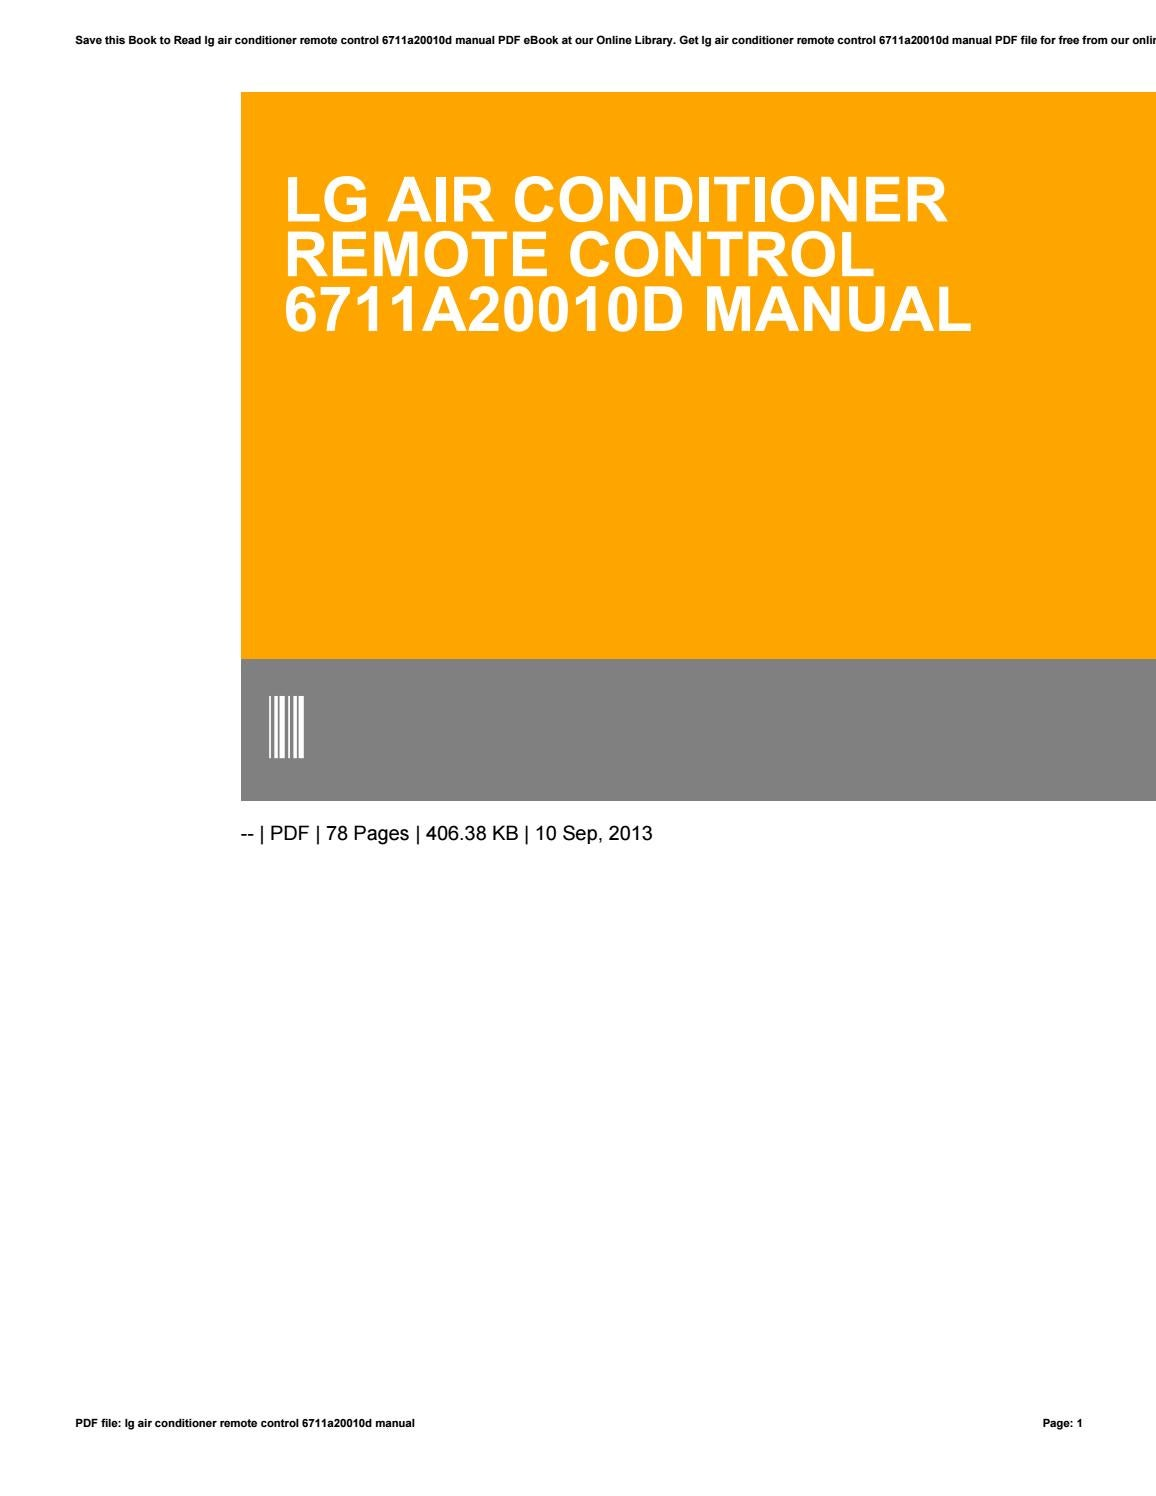 Stihl ht 101 manual ebook array lg aircon manual ebook rh lg aircon manual ebook ballew us fandeluxe Images